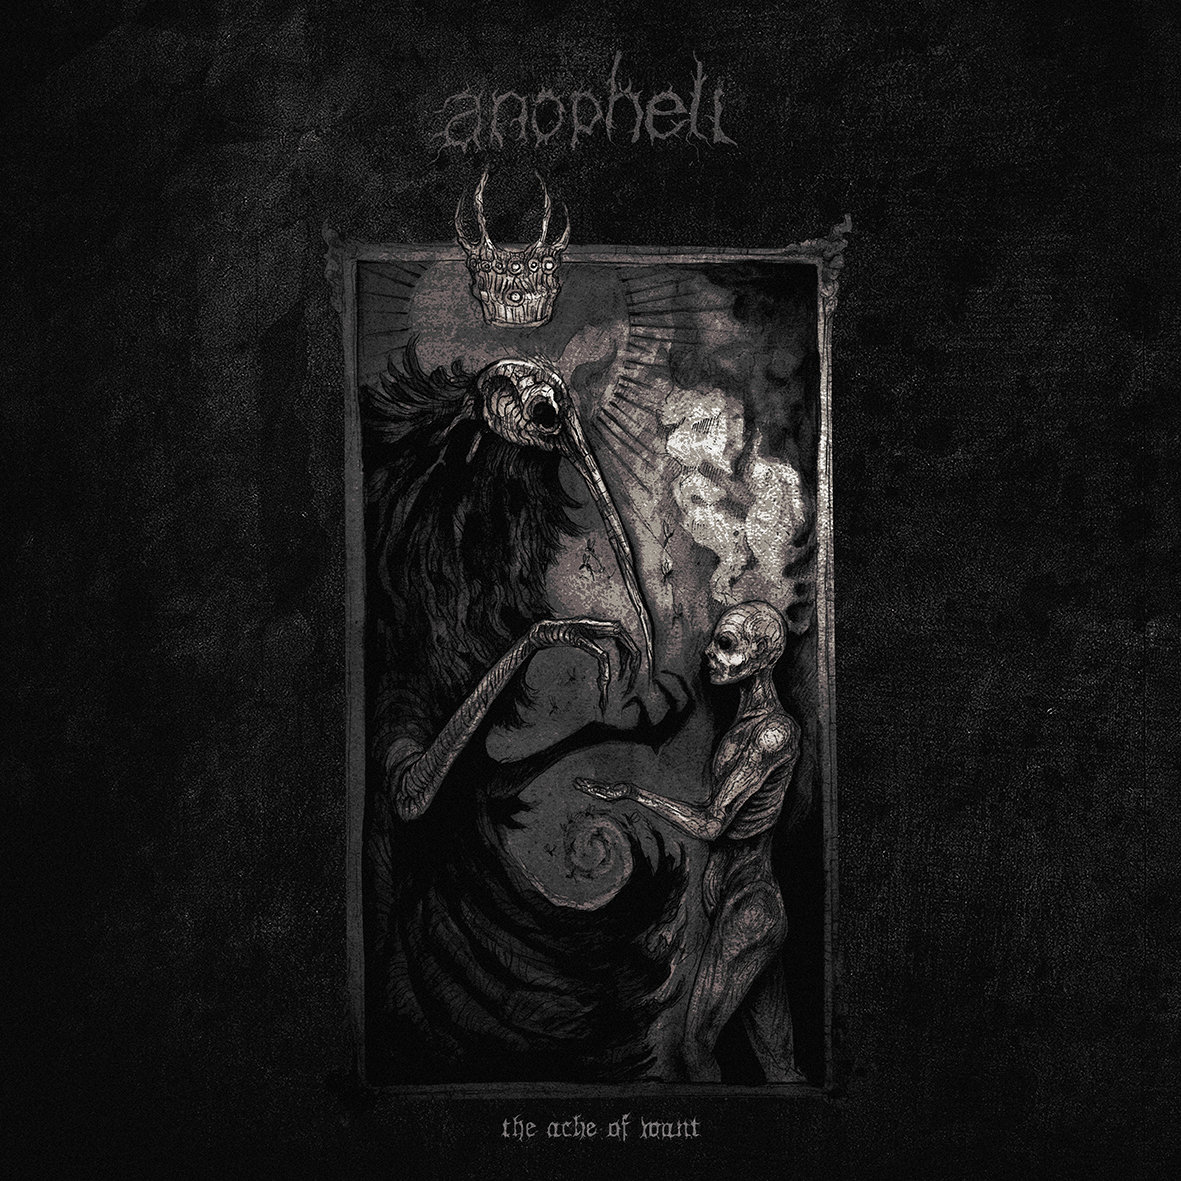 Anopheli - The Ache Of Want @ 'The Ache Of Want' album (metal, cello)